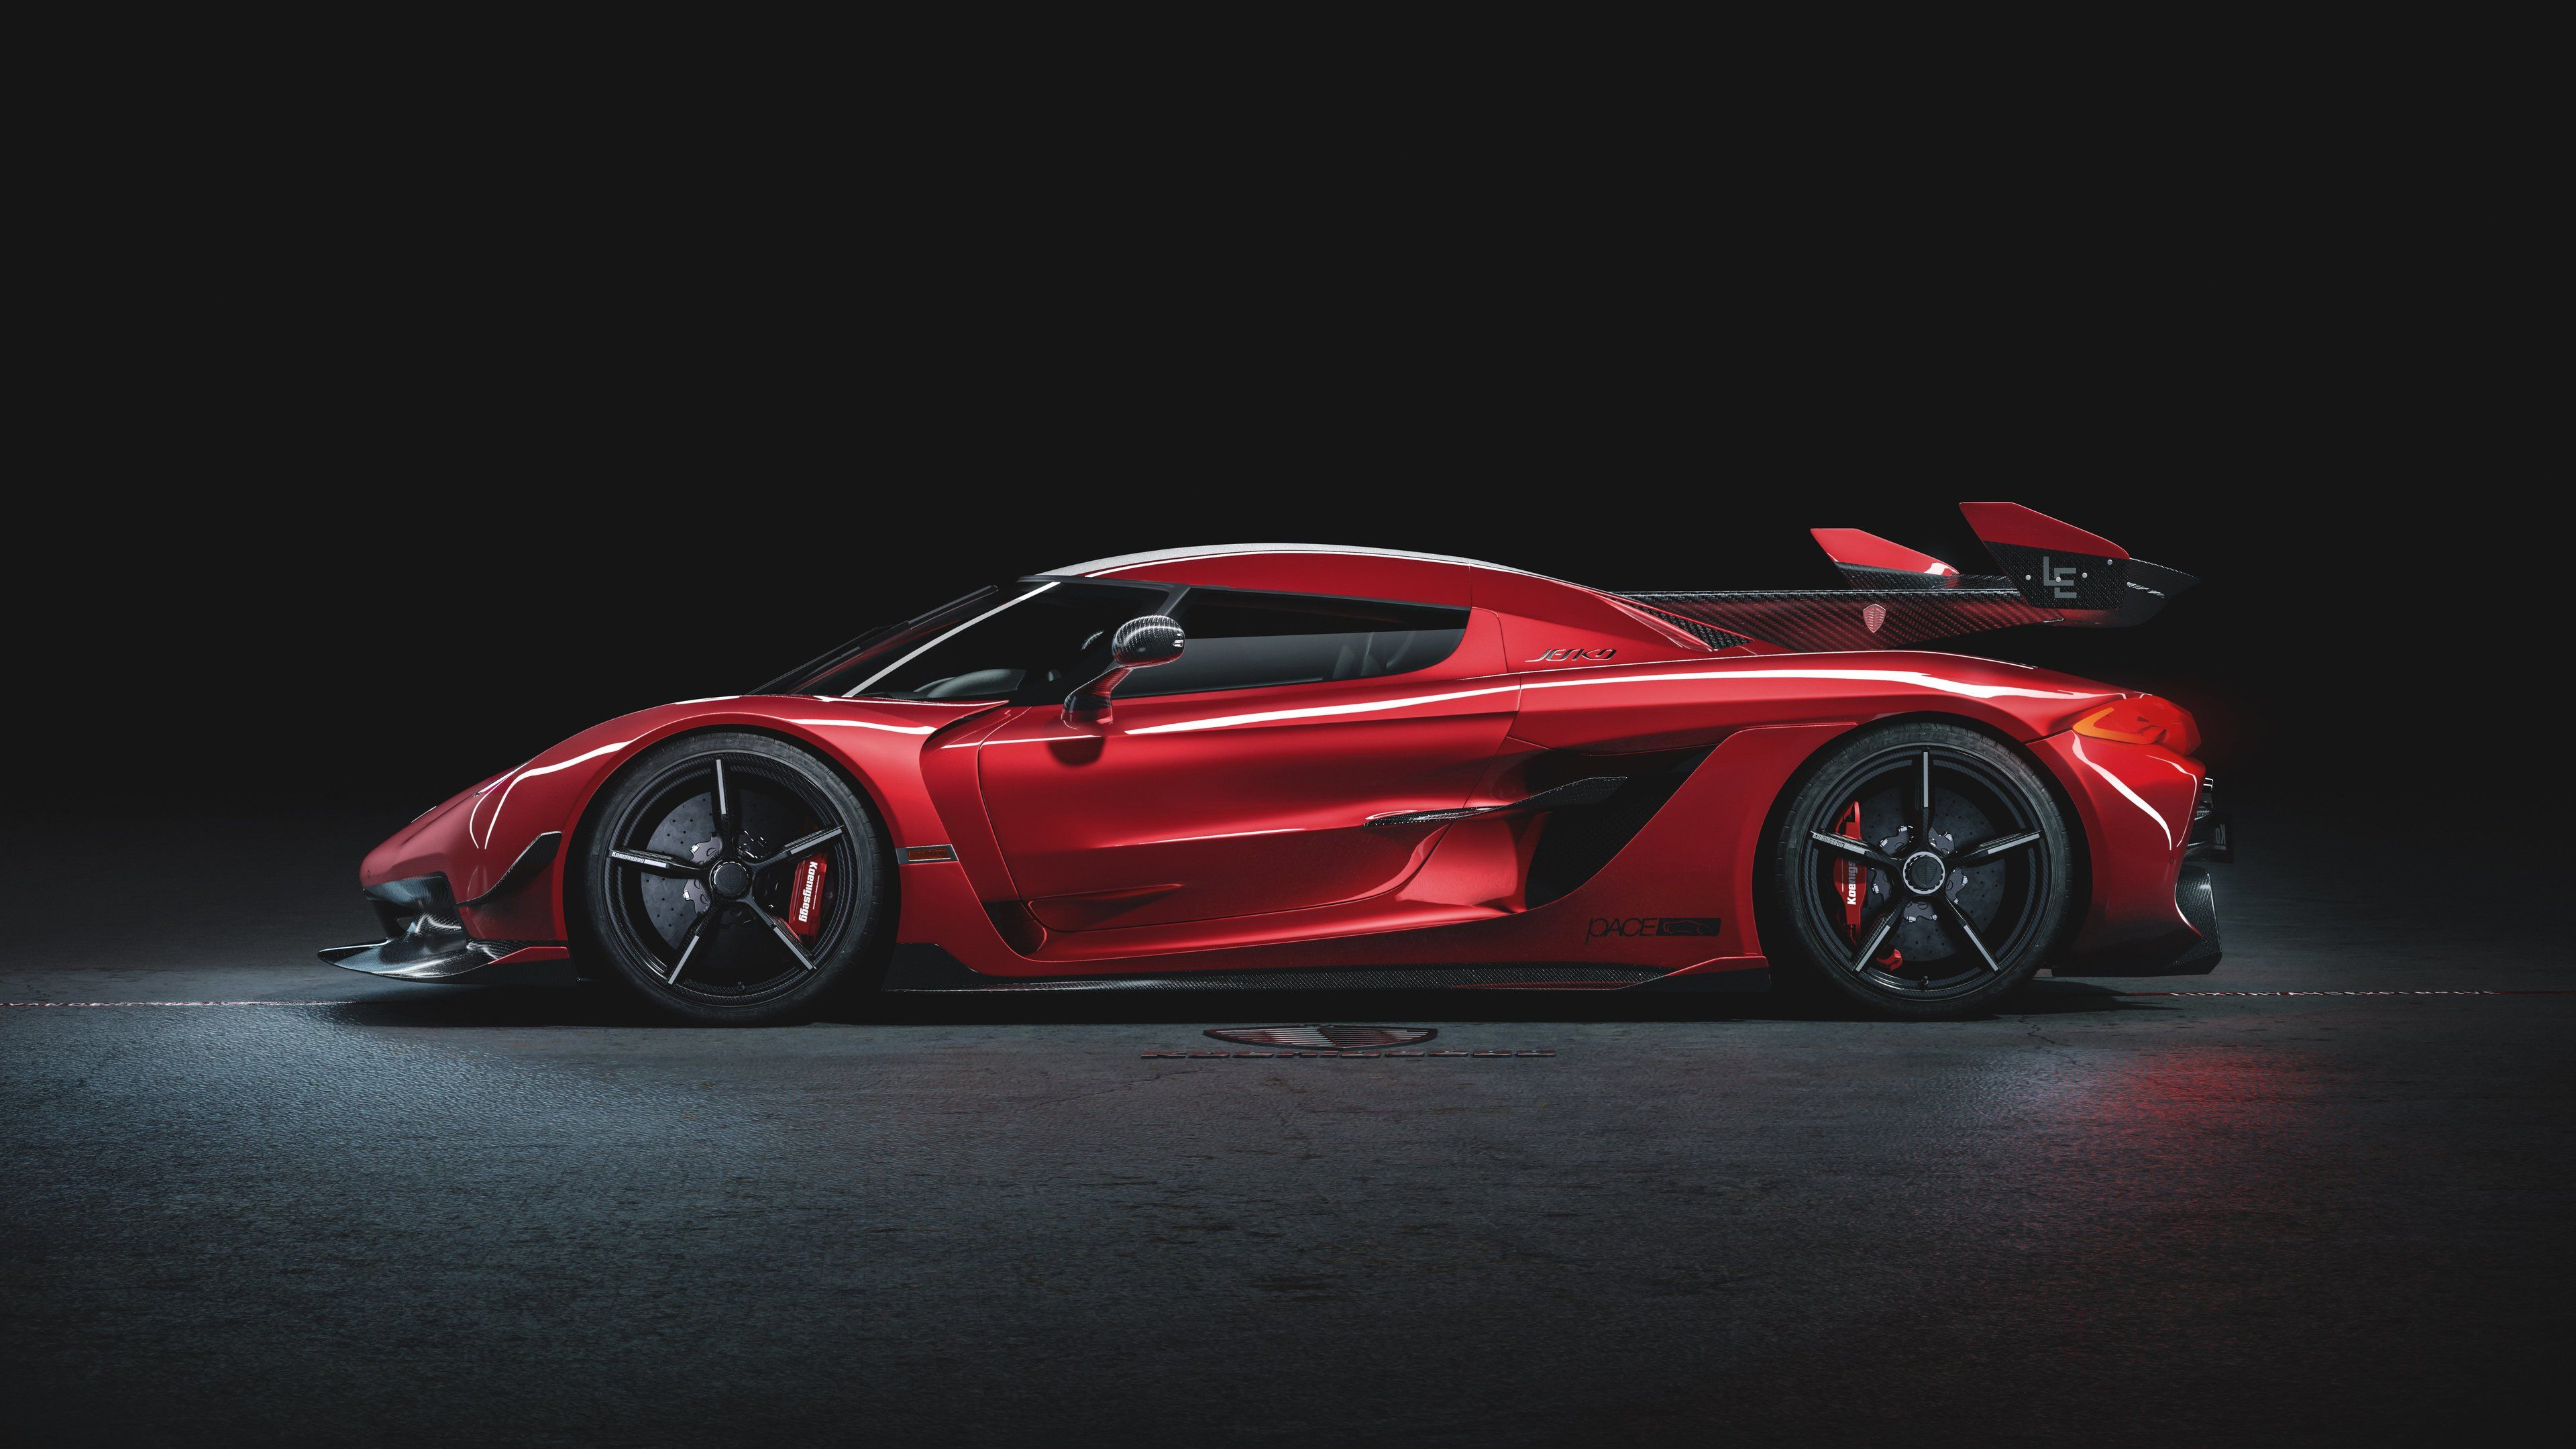 Koenigsegg Jesko Cherry Red Edition 10 Side View Koenigsegg Wallpapers Koenigsegg Jesko Wallpapers Hd Wallpapers Cars W Koenigsegg Car Wallpapers Super Cars